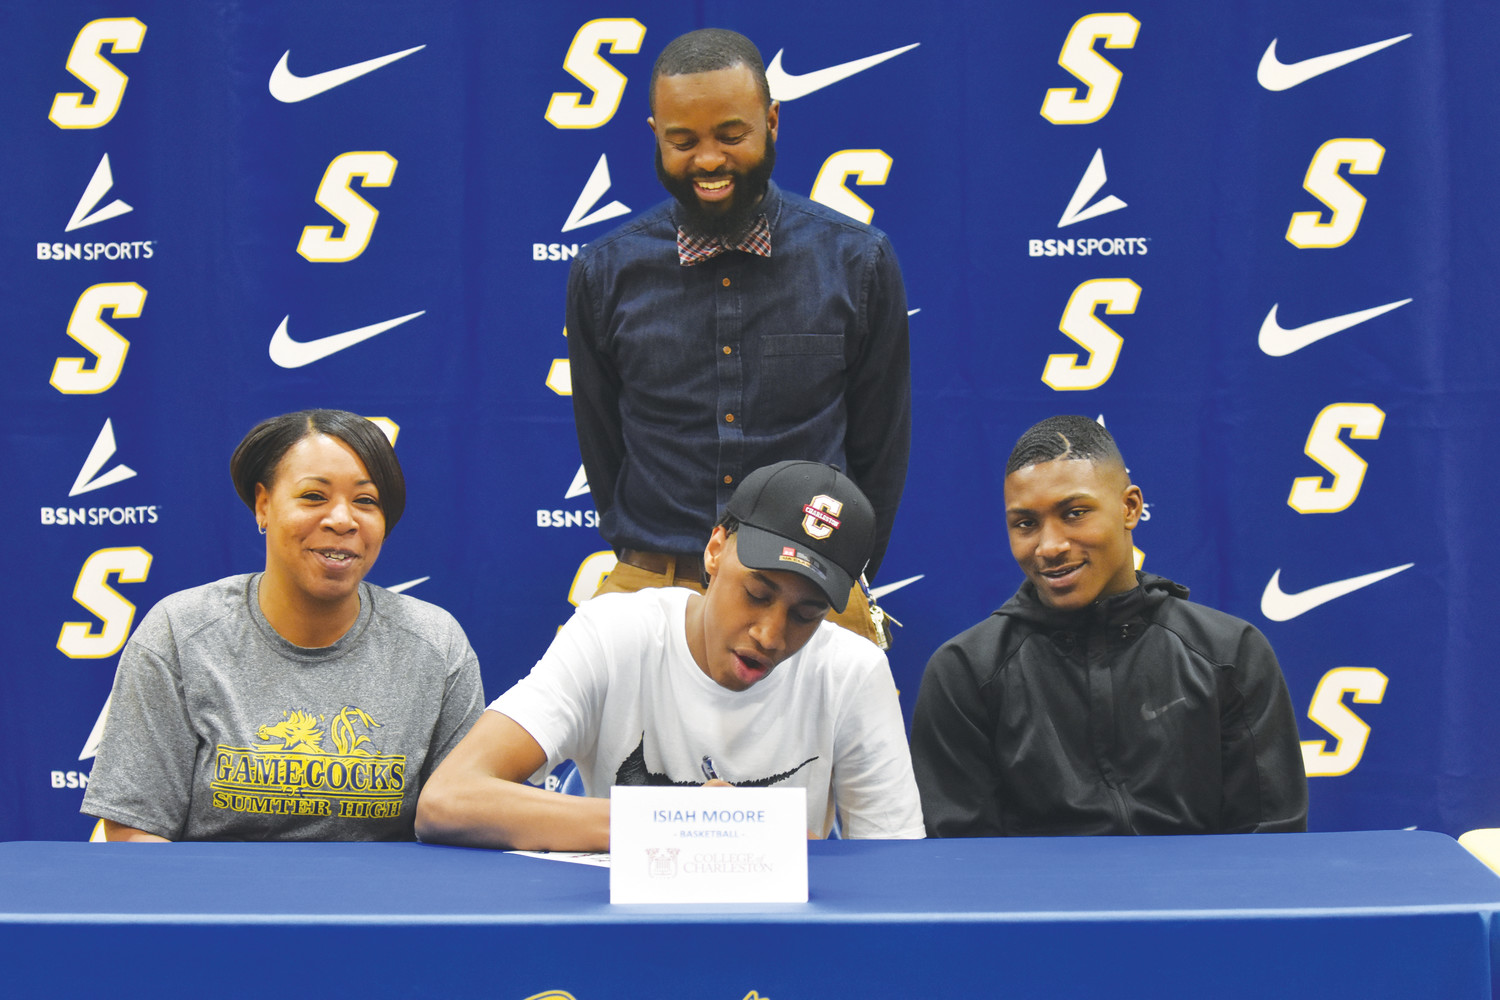 Sumter High School's Isaih Moore, is seen sporting a College of Charleston cap for National Signing Day on Wednesday. The 6-10 forward, flanked by his mother, Shannon Jones (left), his brother Isiah Pinckney and SHS assistant coach Reynard Jefferson, as he announces his signing.